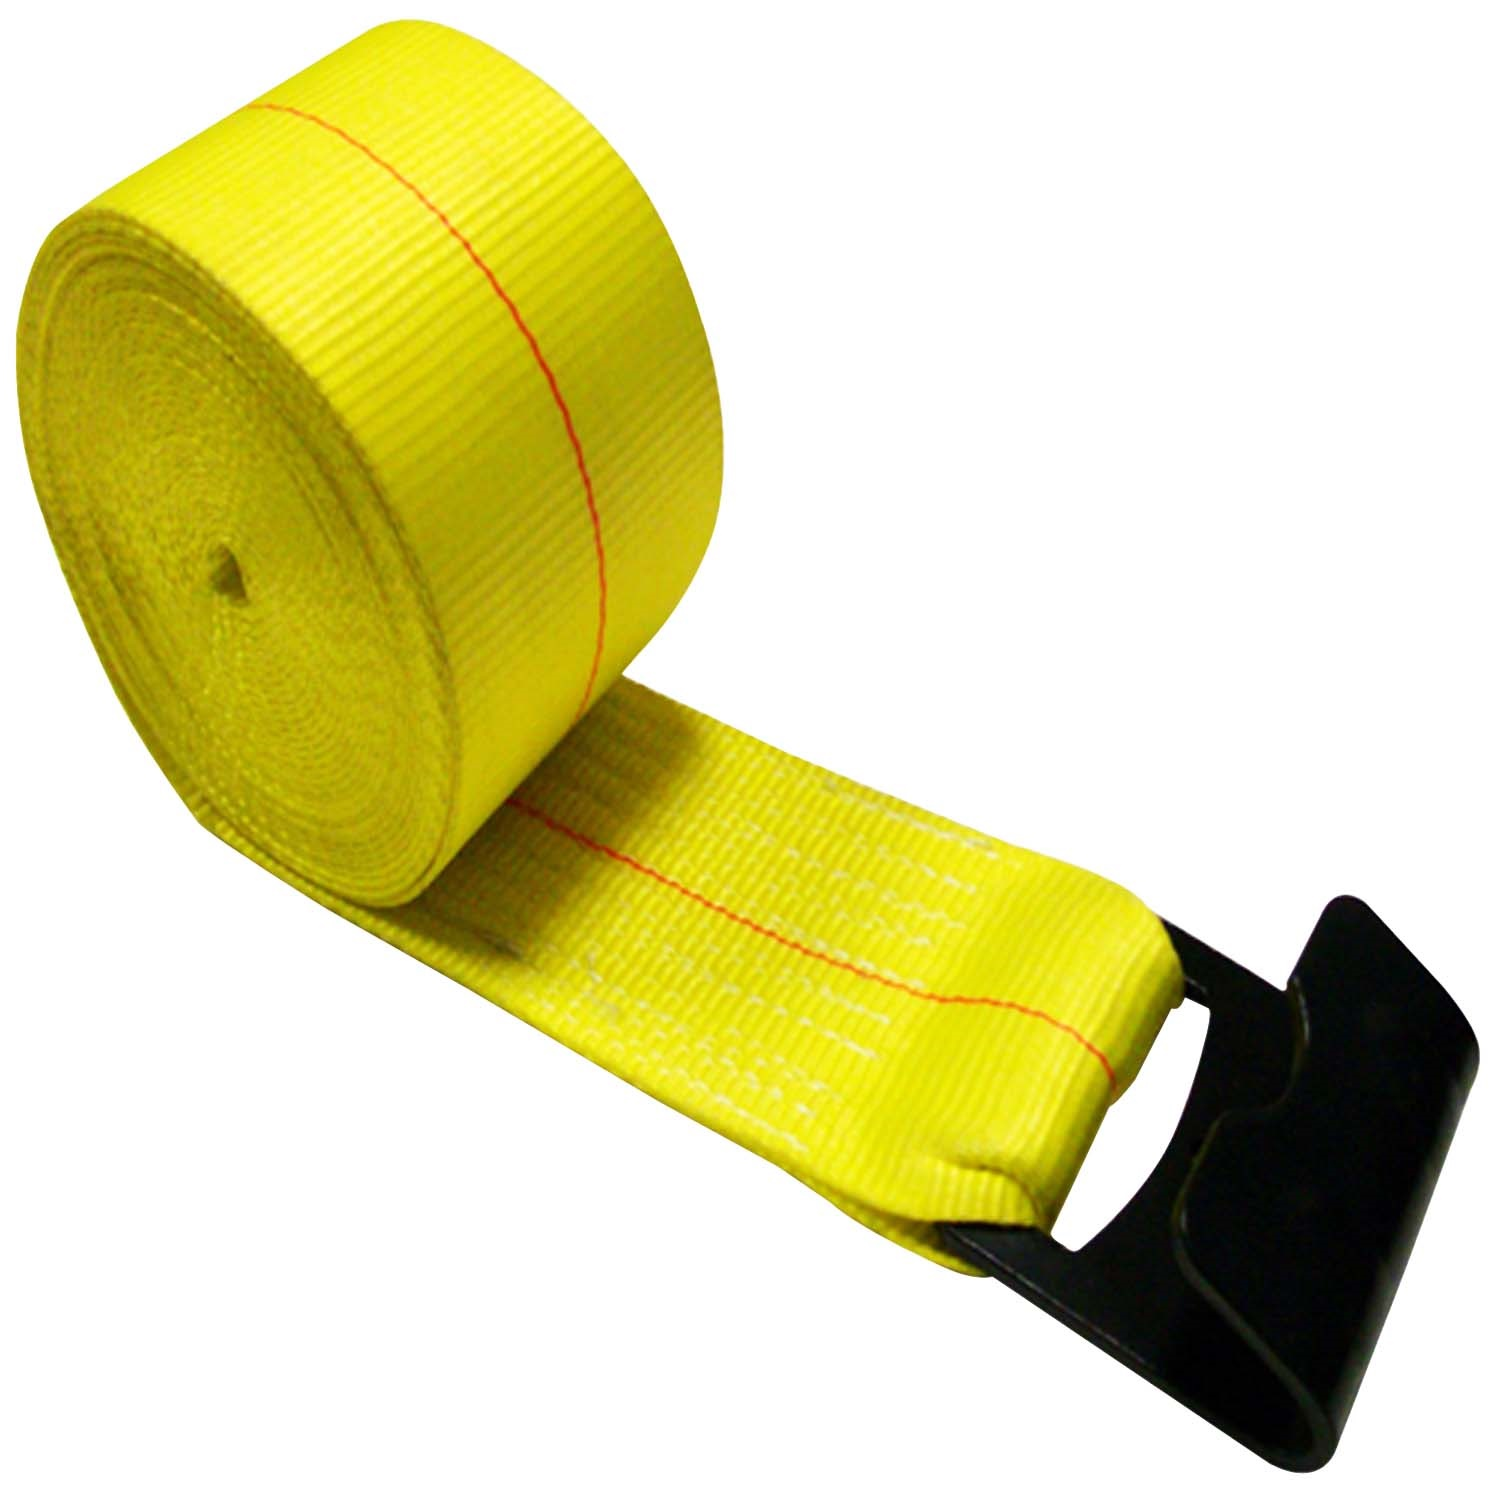 4 x 30' Winch Strap with Gold Zinc Flat Hook 16,200lb